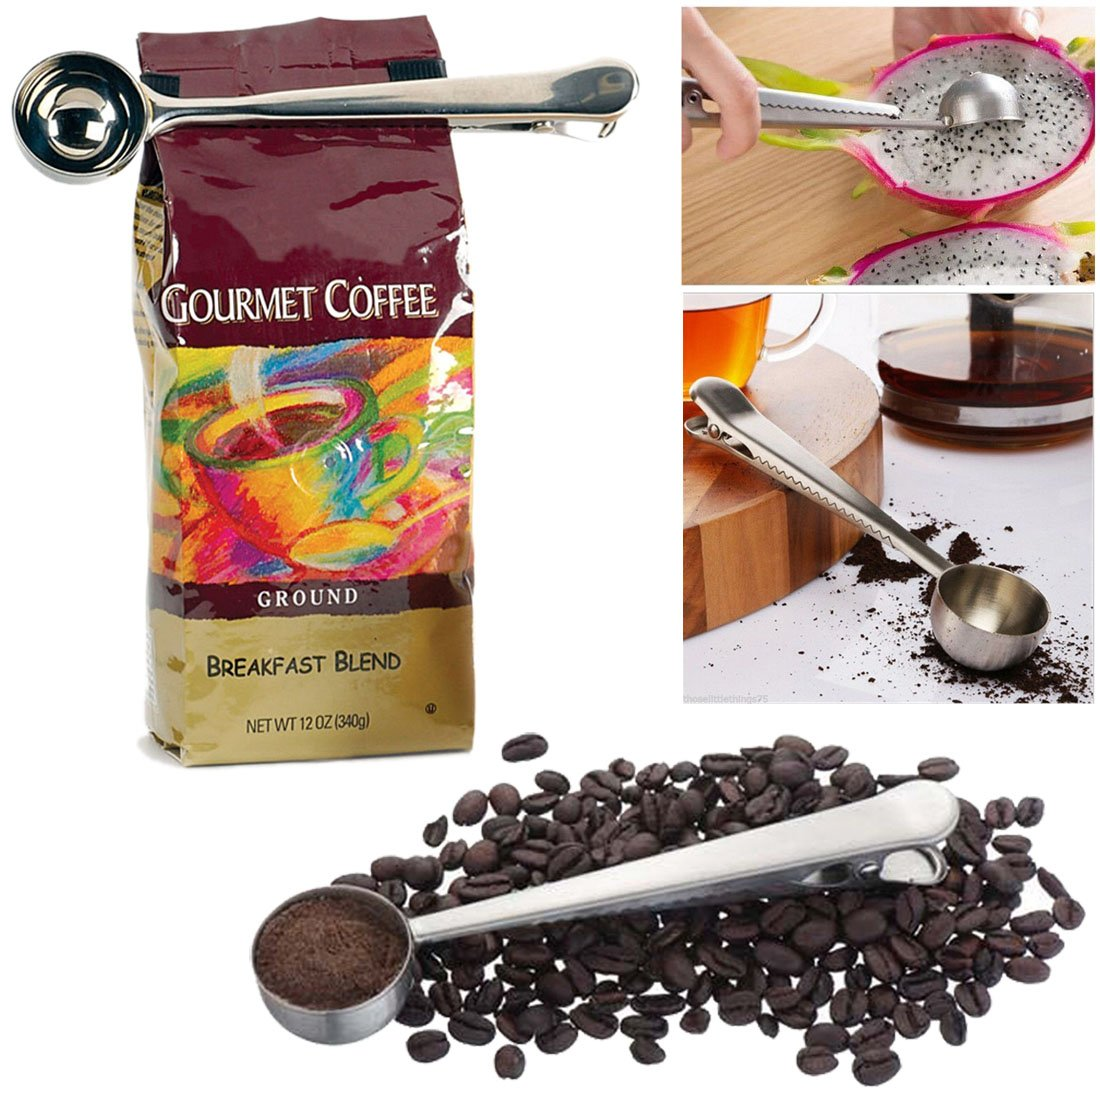 JJOnlineStore - 2 in 1 Stainless Steel 1 Cup Scoop Ground Coffee Measuring Spoon With Bag Sealing Clip Fruit Powder Spice Ice Cream (1 Pc)